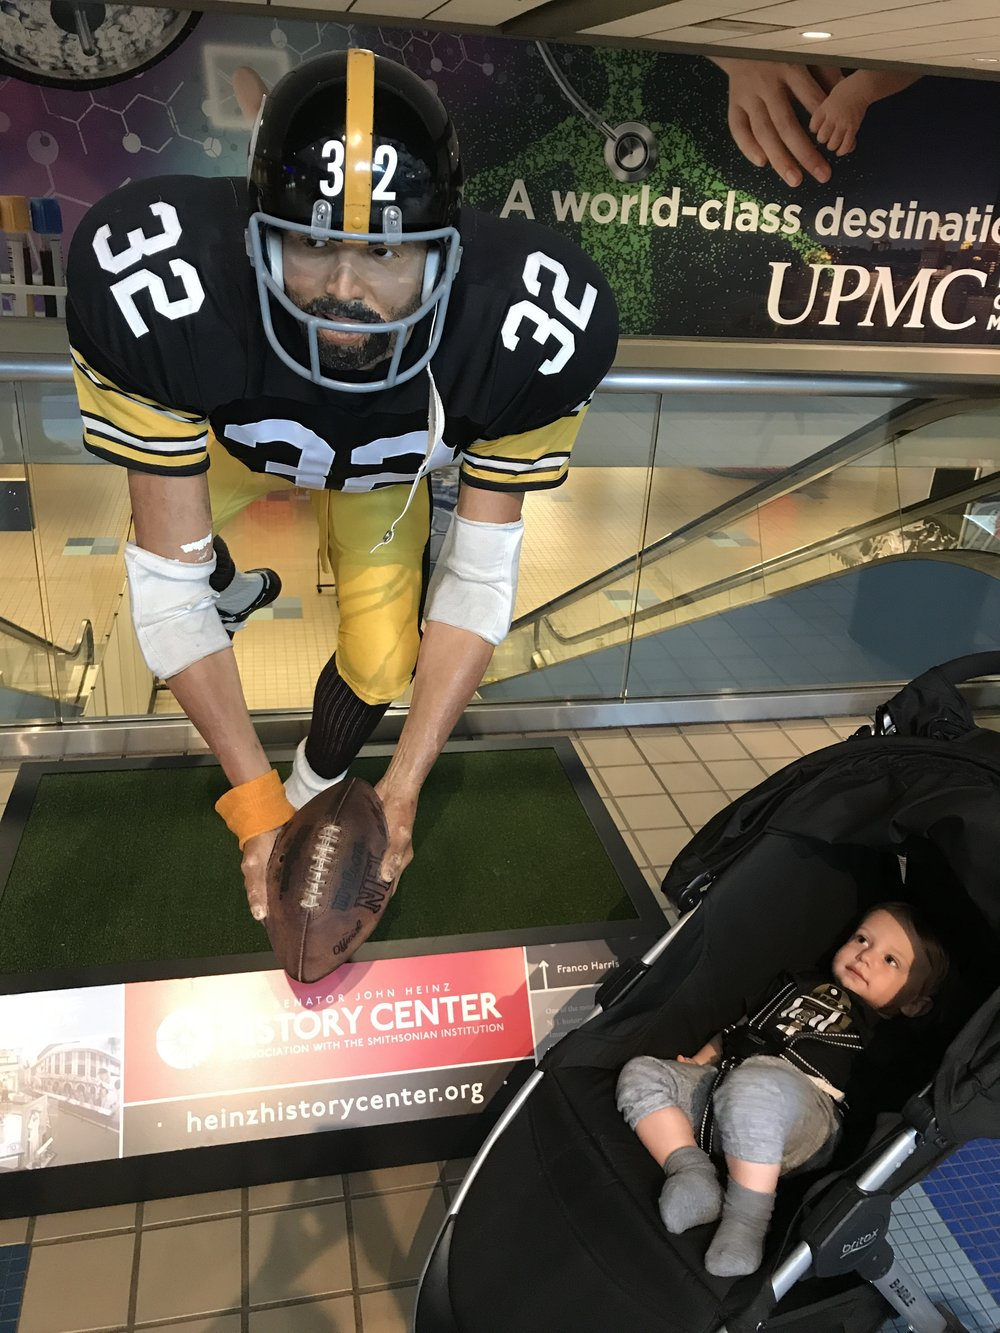 Patrick got to see the statue of Franco Harris in the Pittsburgh airport after he sat across from Franco Harris on the airplane.  No big deal, but the real version was a little better, and Patrick is unimpressed with the fake.